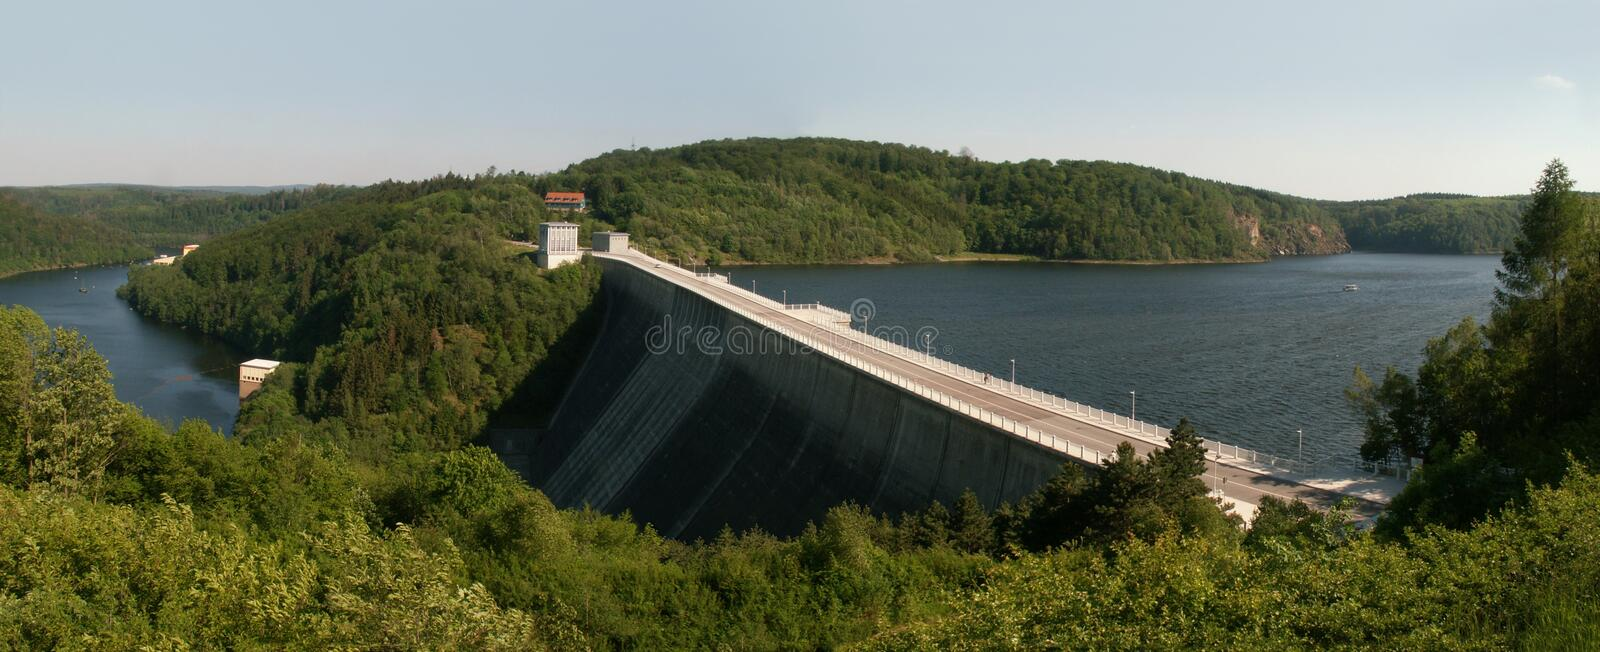 Download Panoramic Picture Of Germanys Dam Rappbodesperre Stock Photo - Image: 6949968